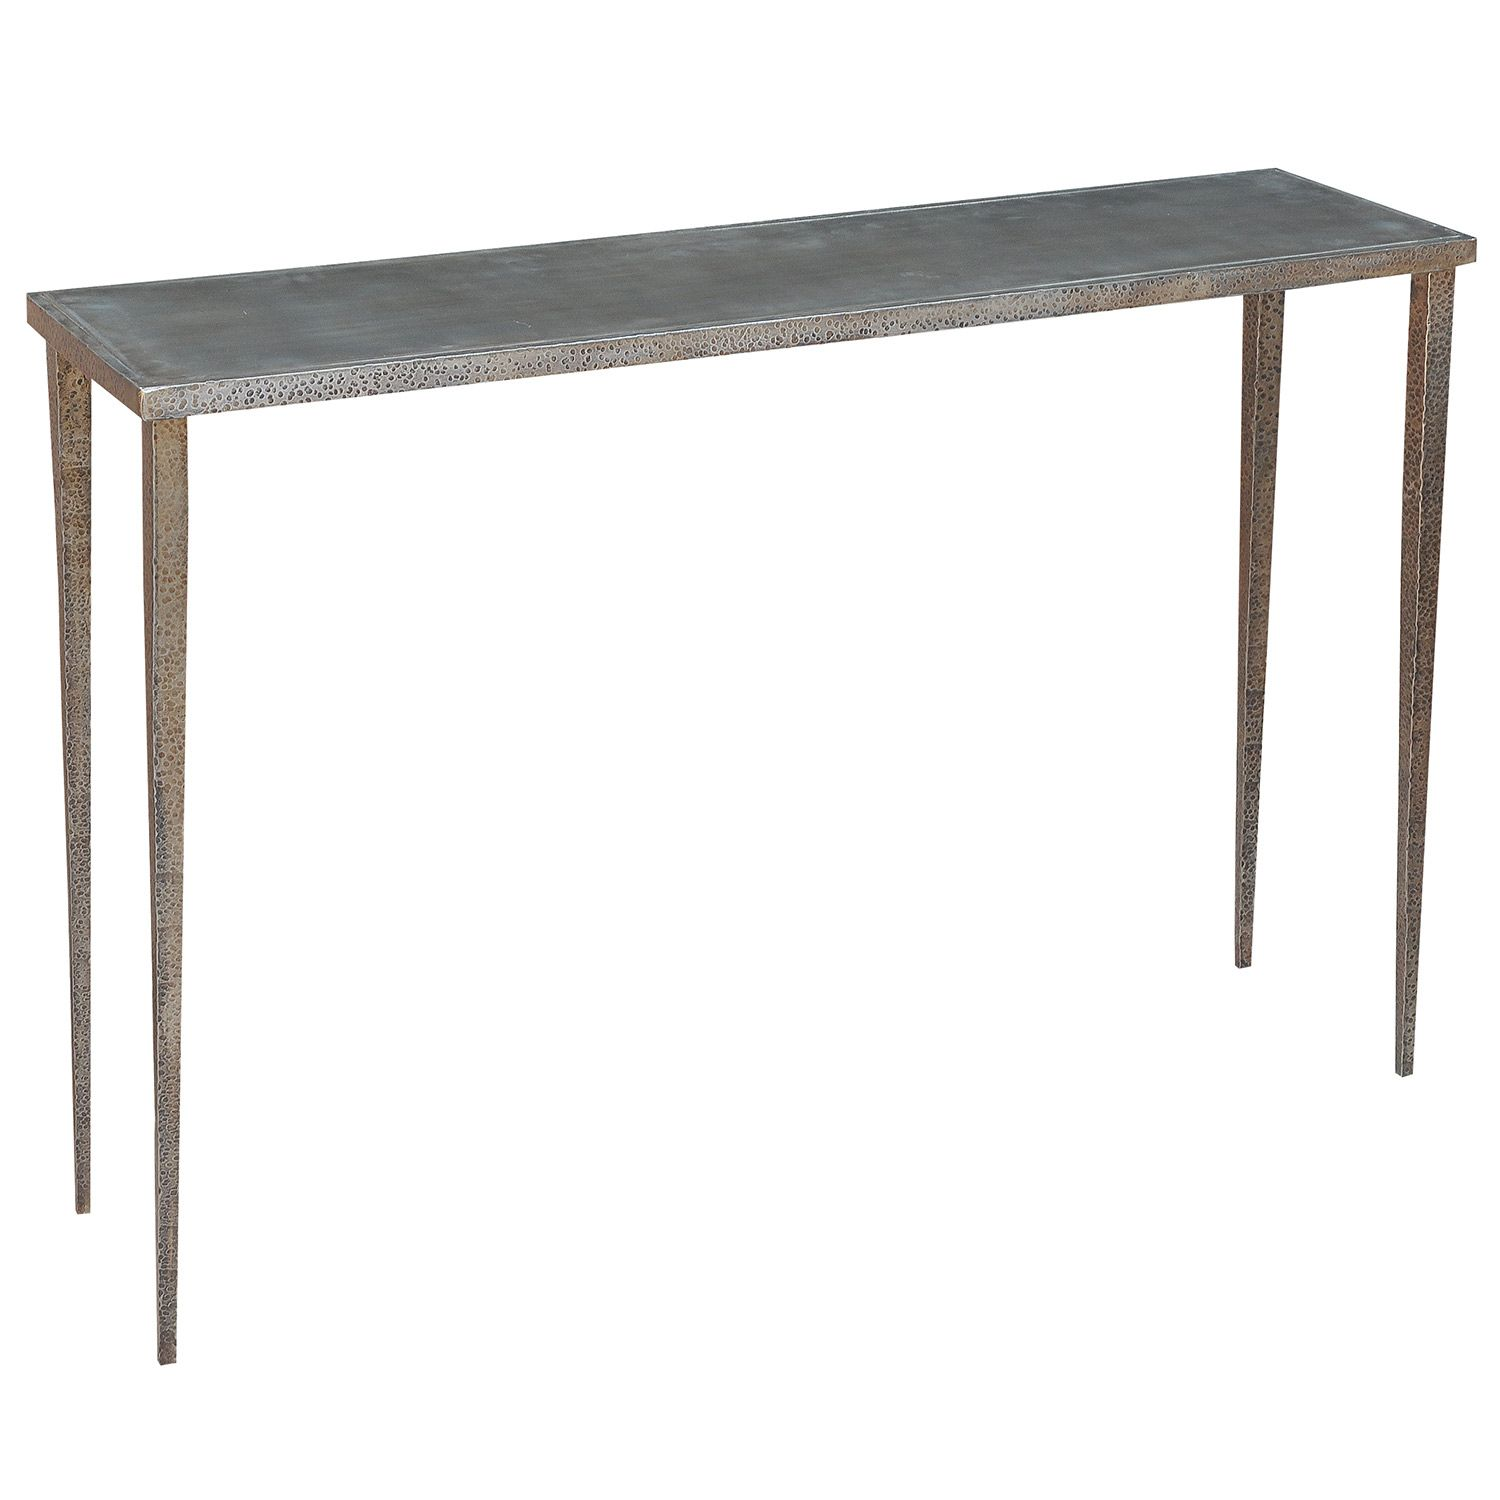 Lena Metal Console Table @Zinc_Door | f u r n i t u r e ...